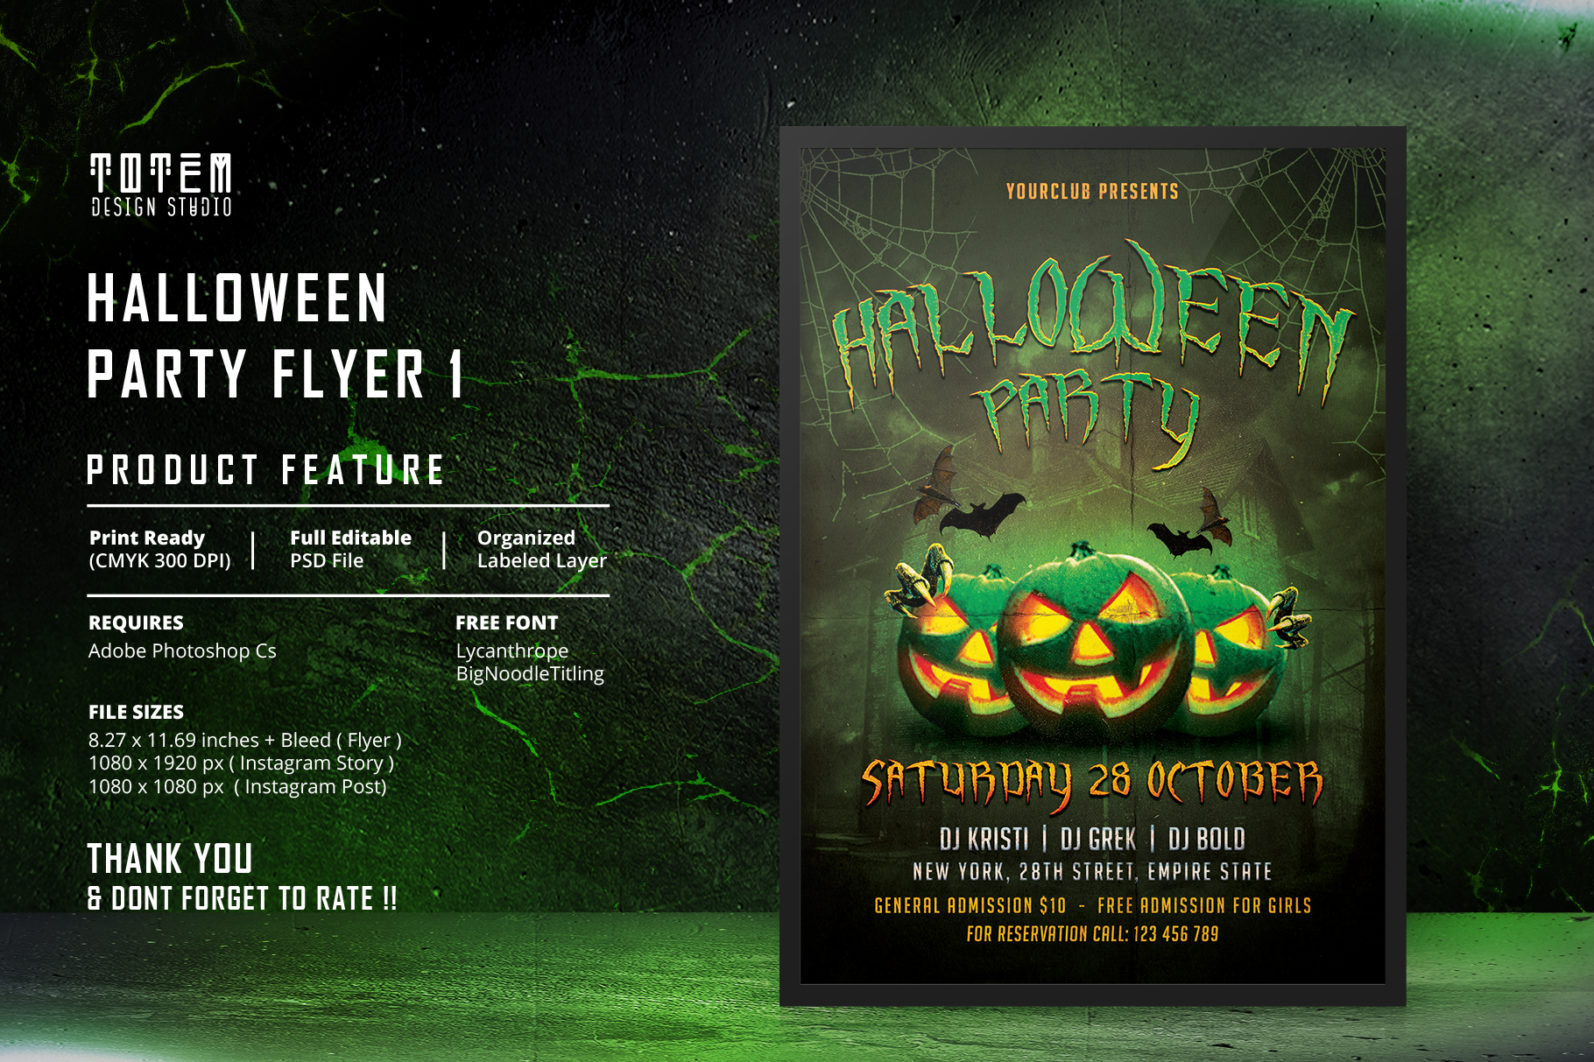 HALLOWEEN PARTY FLYER 1 - Preview Image 1 Halloween Party Flyer 1 Set -